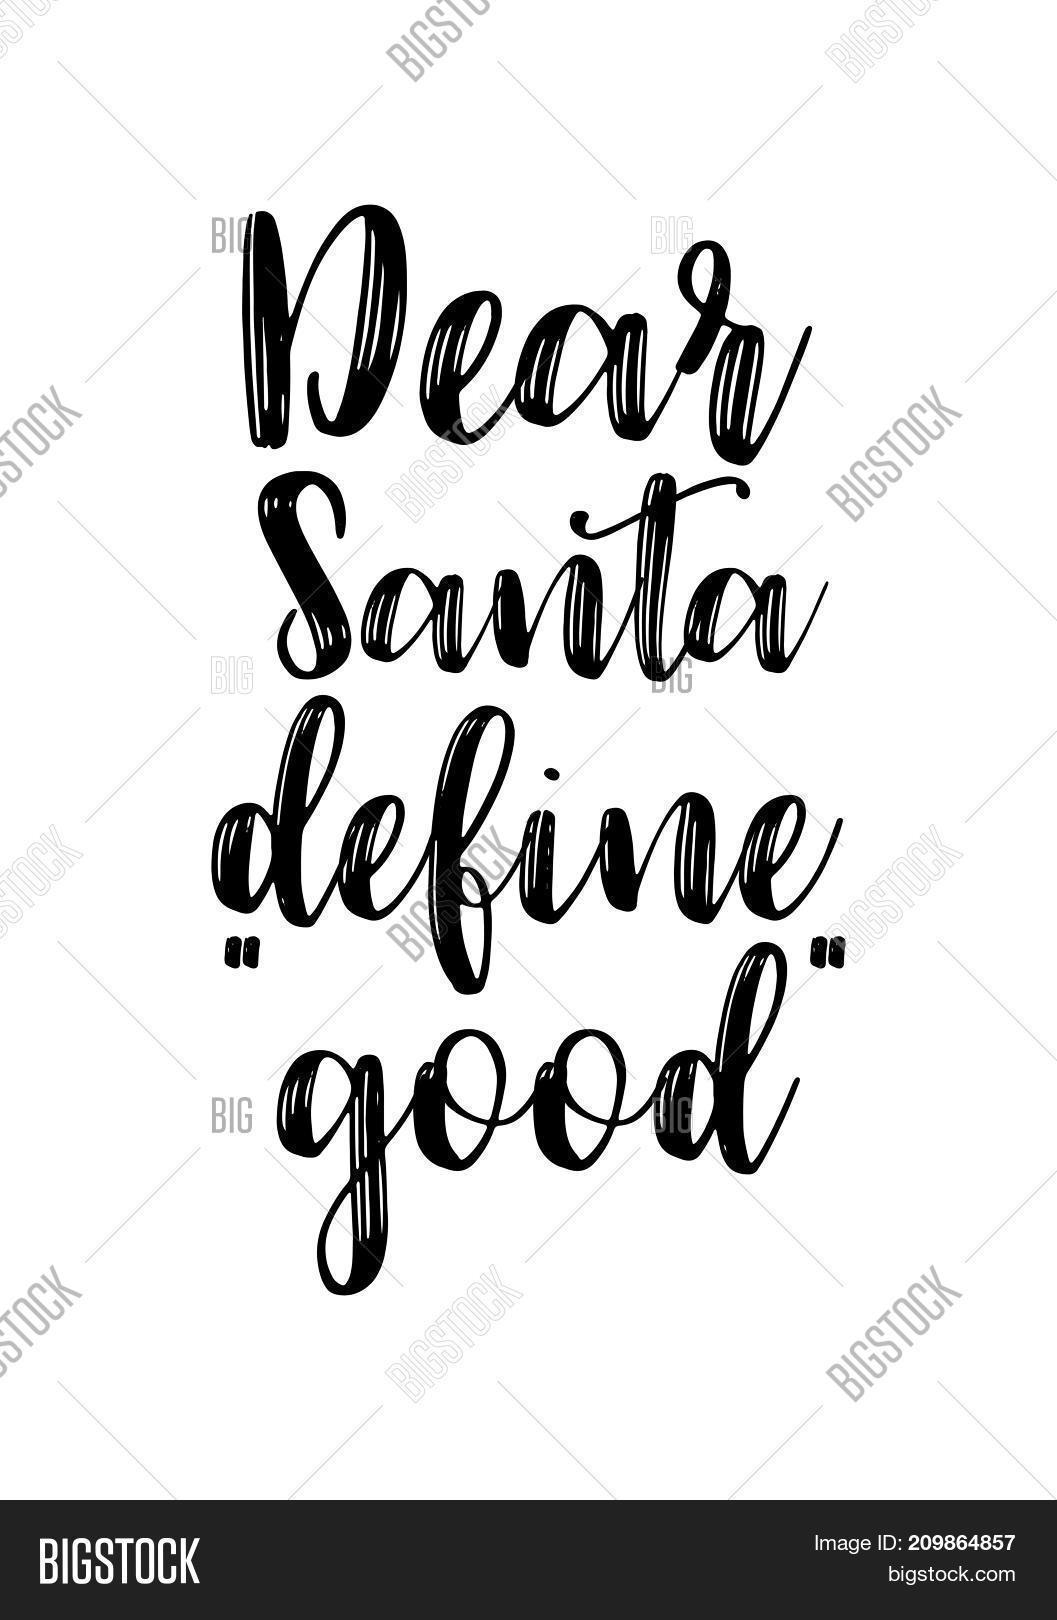 christmas greeting card with brush calligraphy vector black with white background dear santa define - Define Christmas